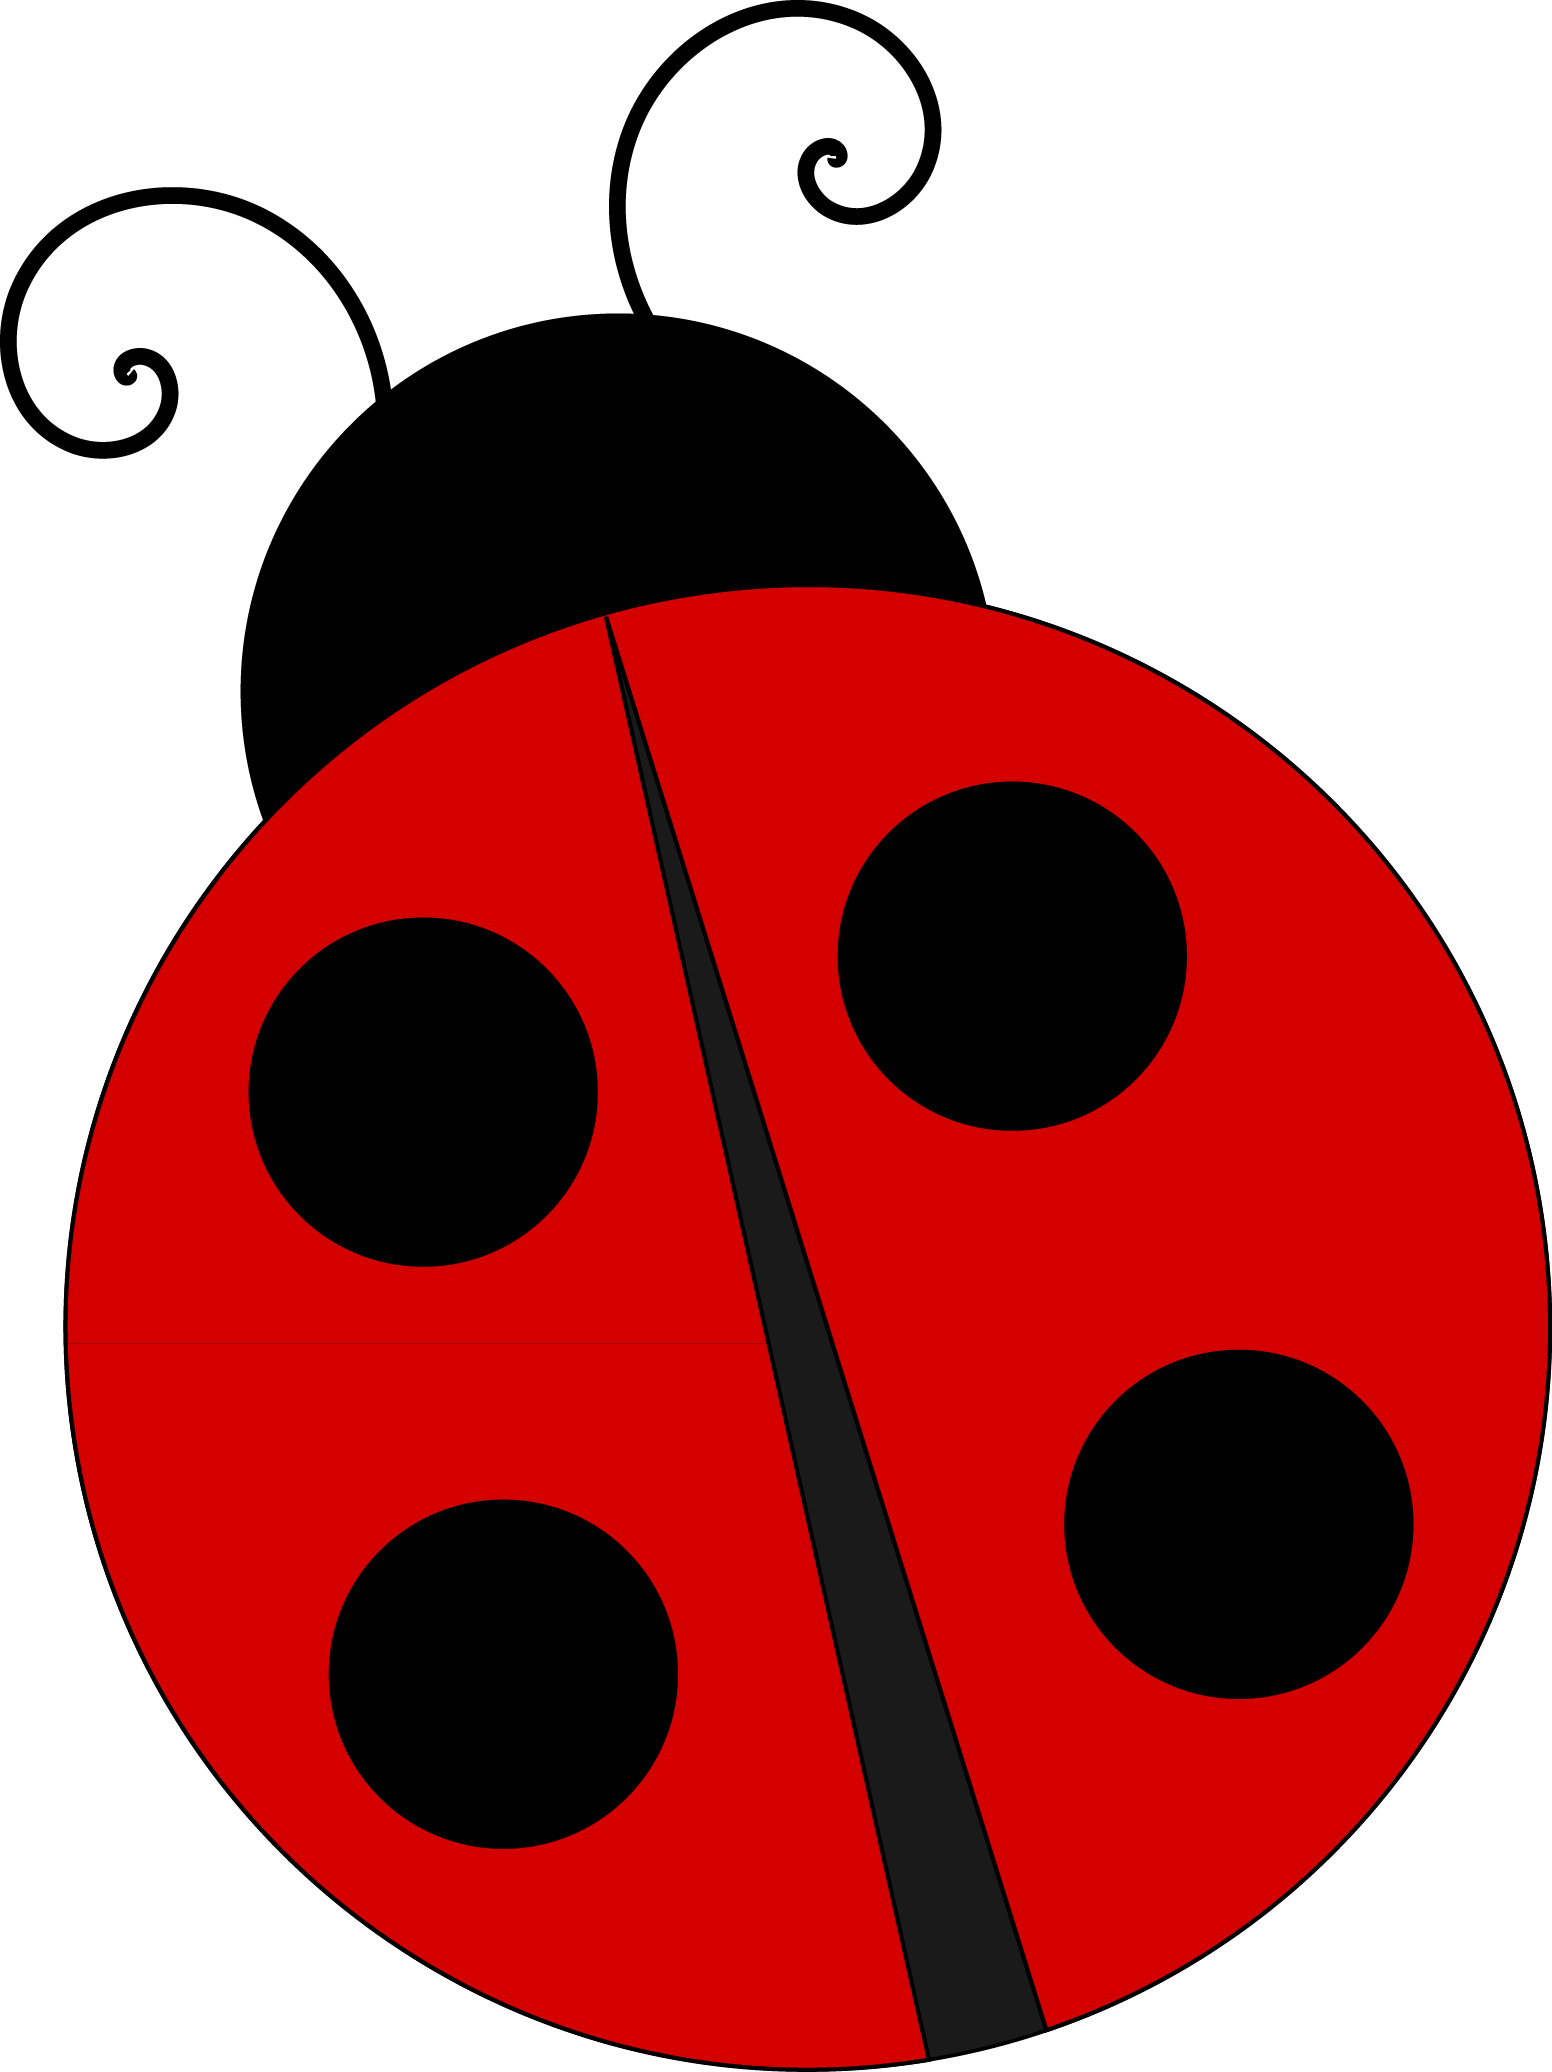 Transparent ladybug. Insect background png arts